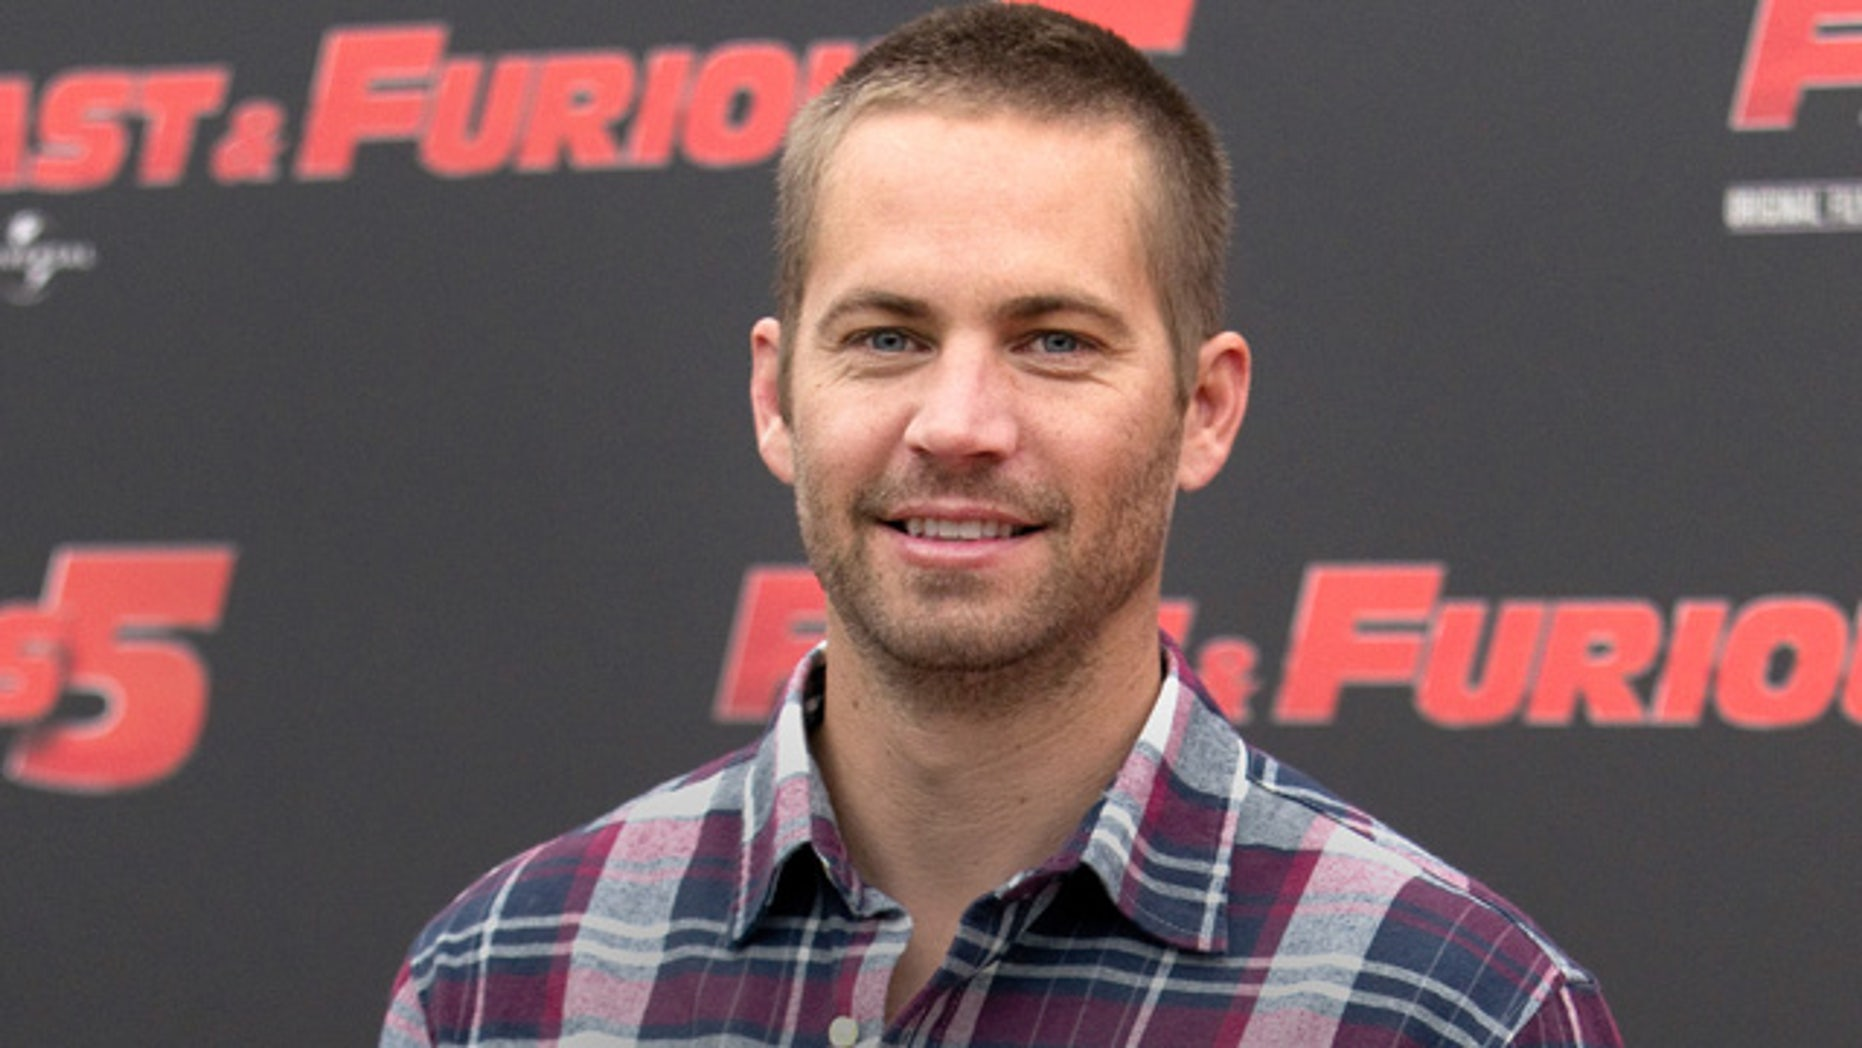 April 29, 2011: Actor Paul Walker poses during the photo call of the movie 'Fast and Furious 5' in Rome. Walker's brothers are filling in to help finish shooting on Fast & Furious 7. (AP Photo/Andrew Medichini, File)